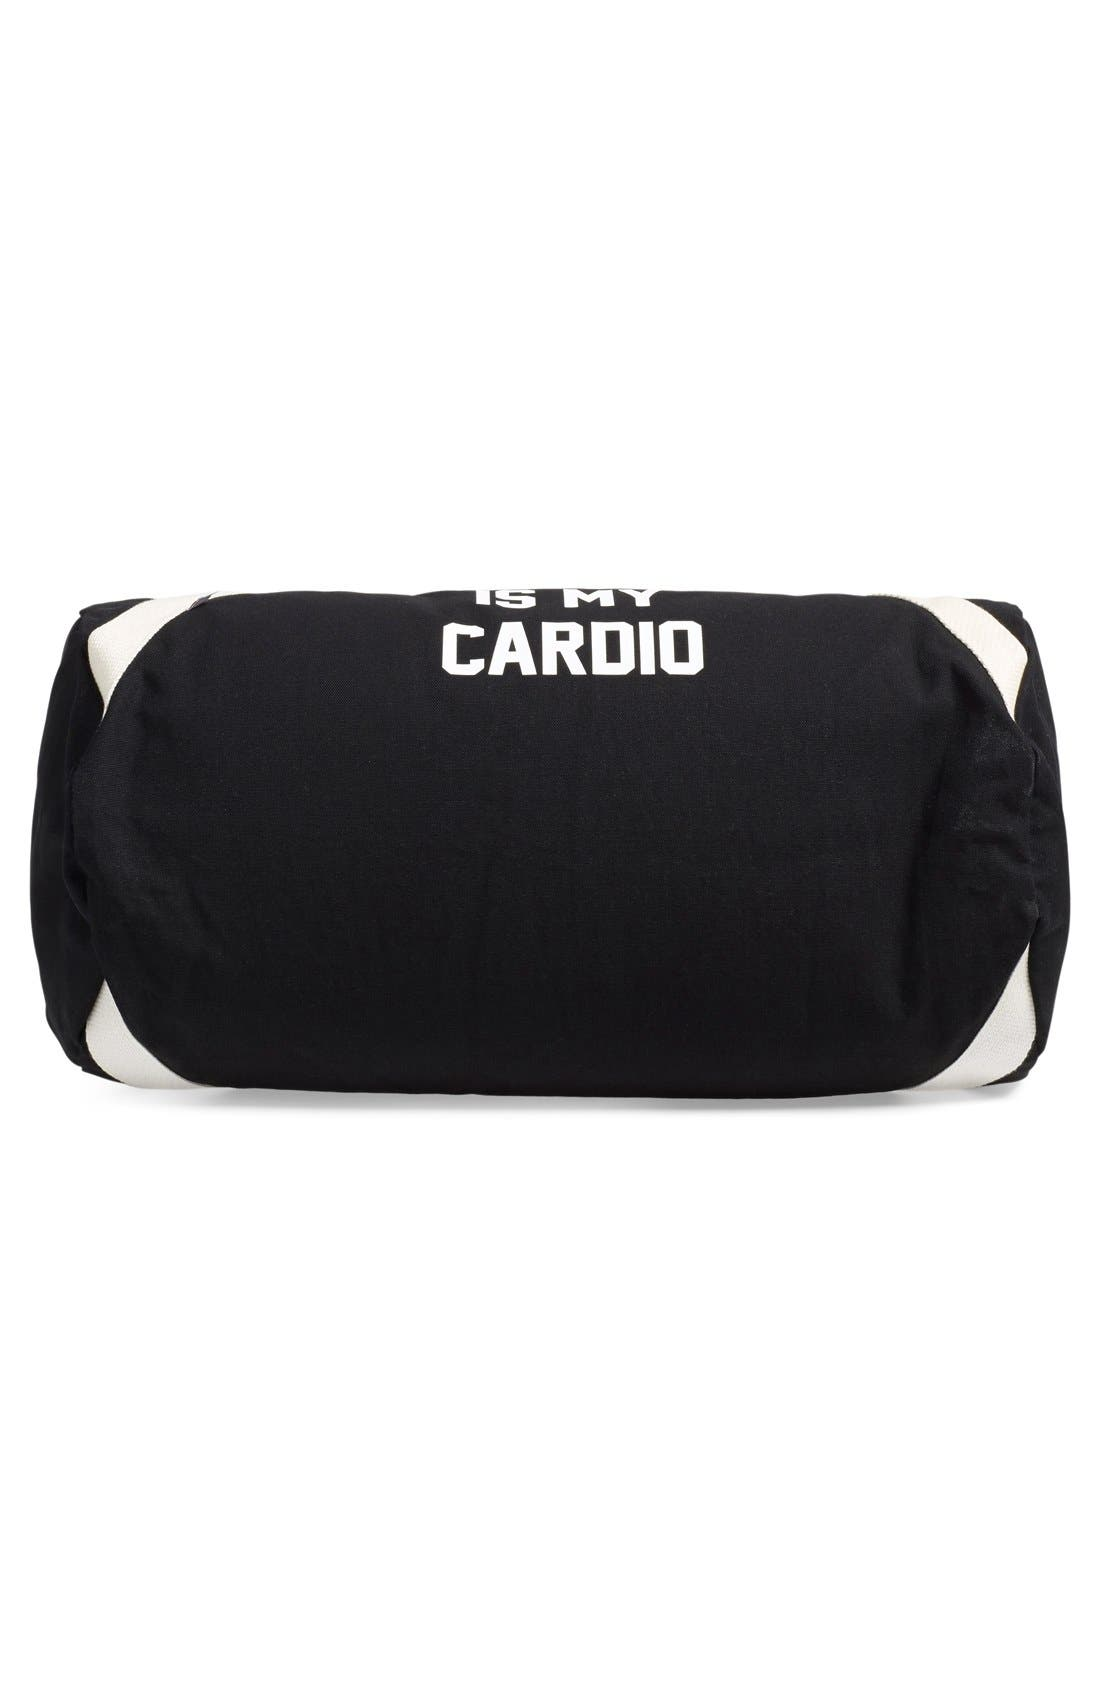 Alternate Image 3  - Private Party 'Turning Up Is My Cardio' Duffel Bag